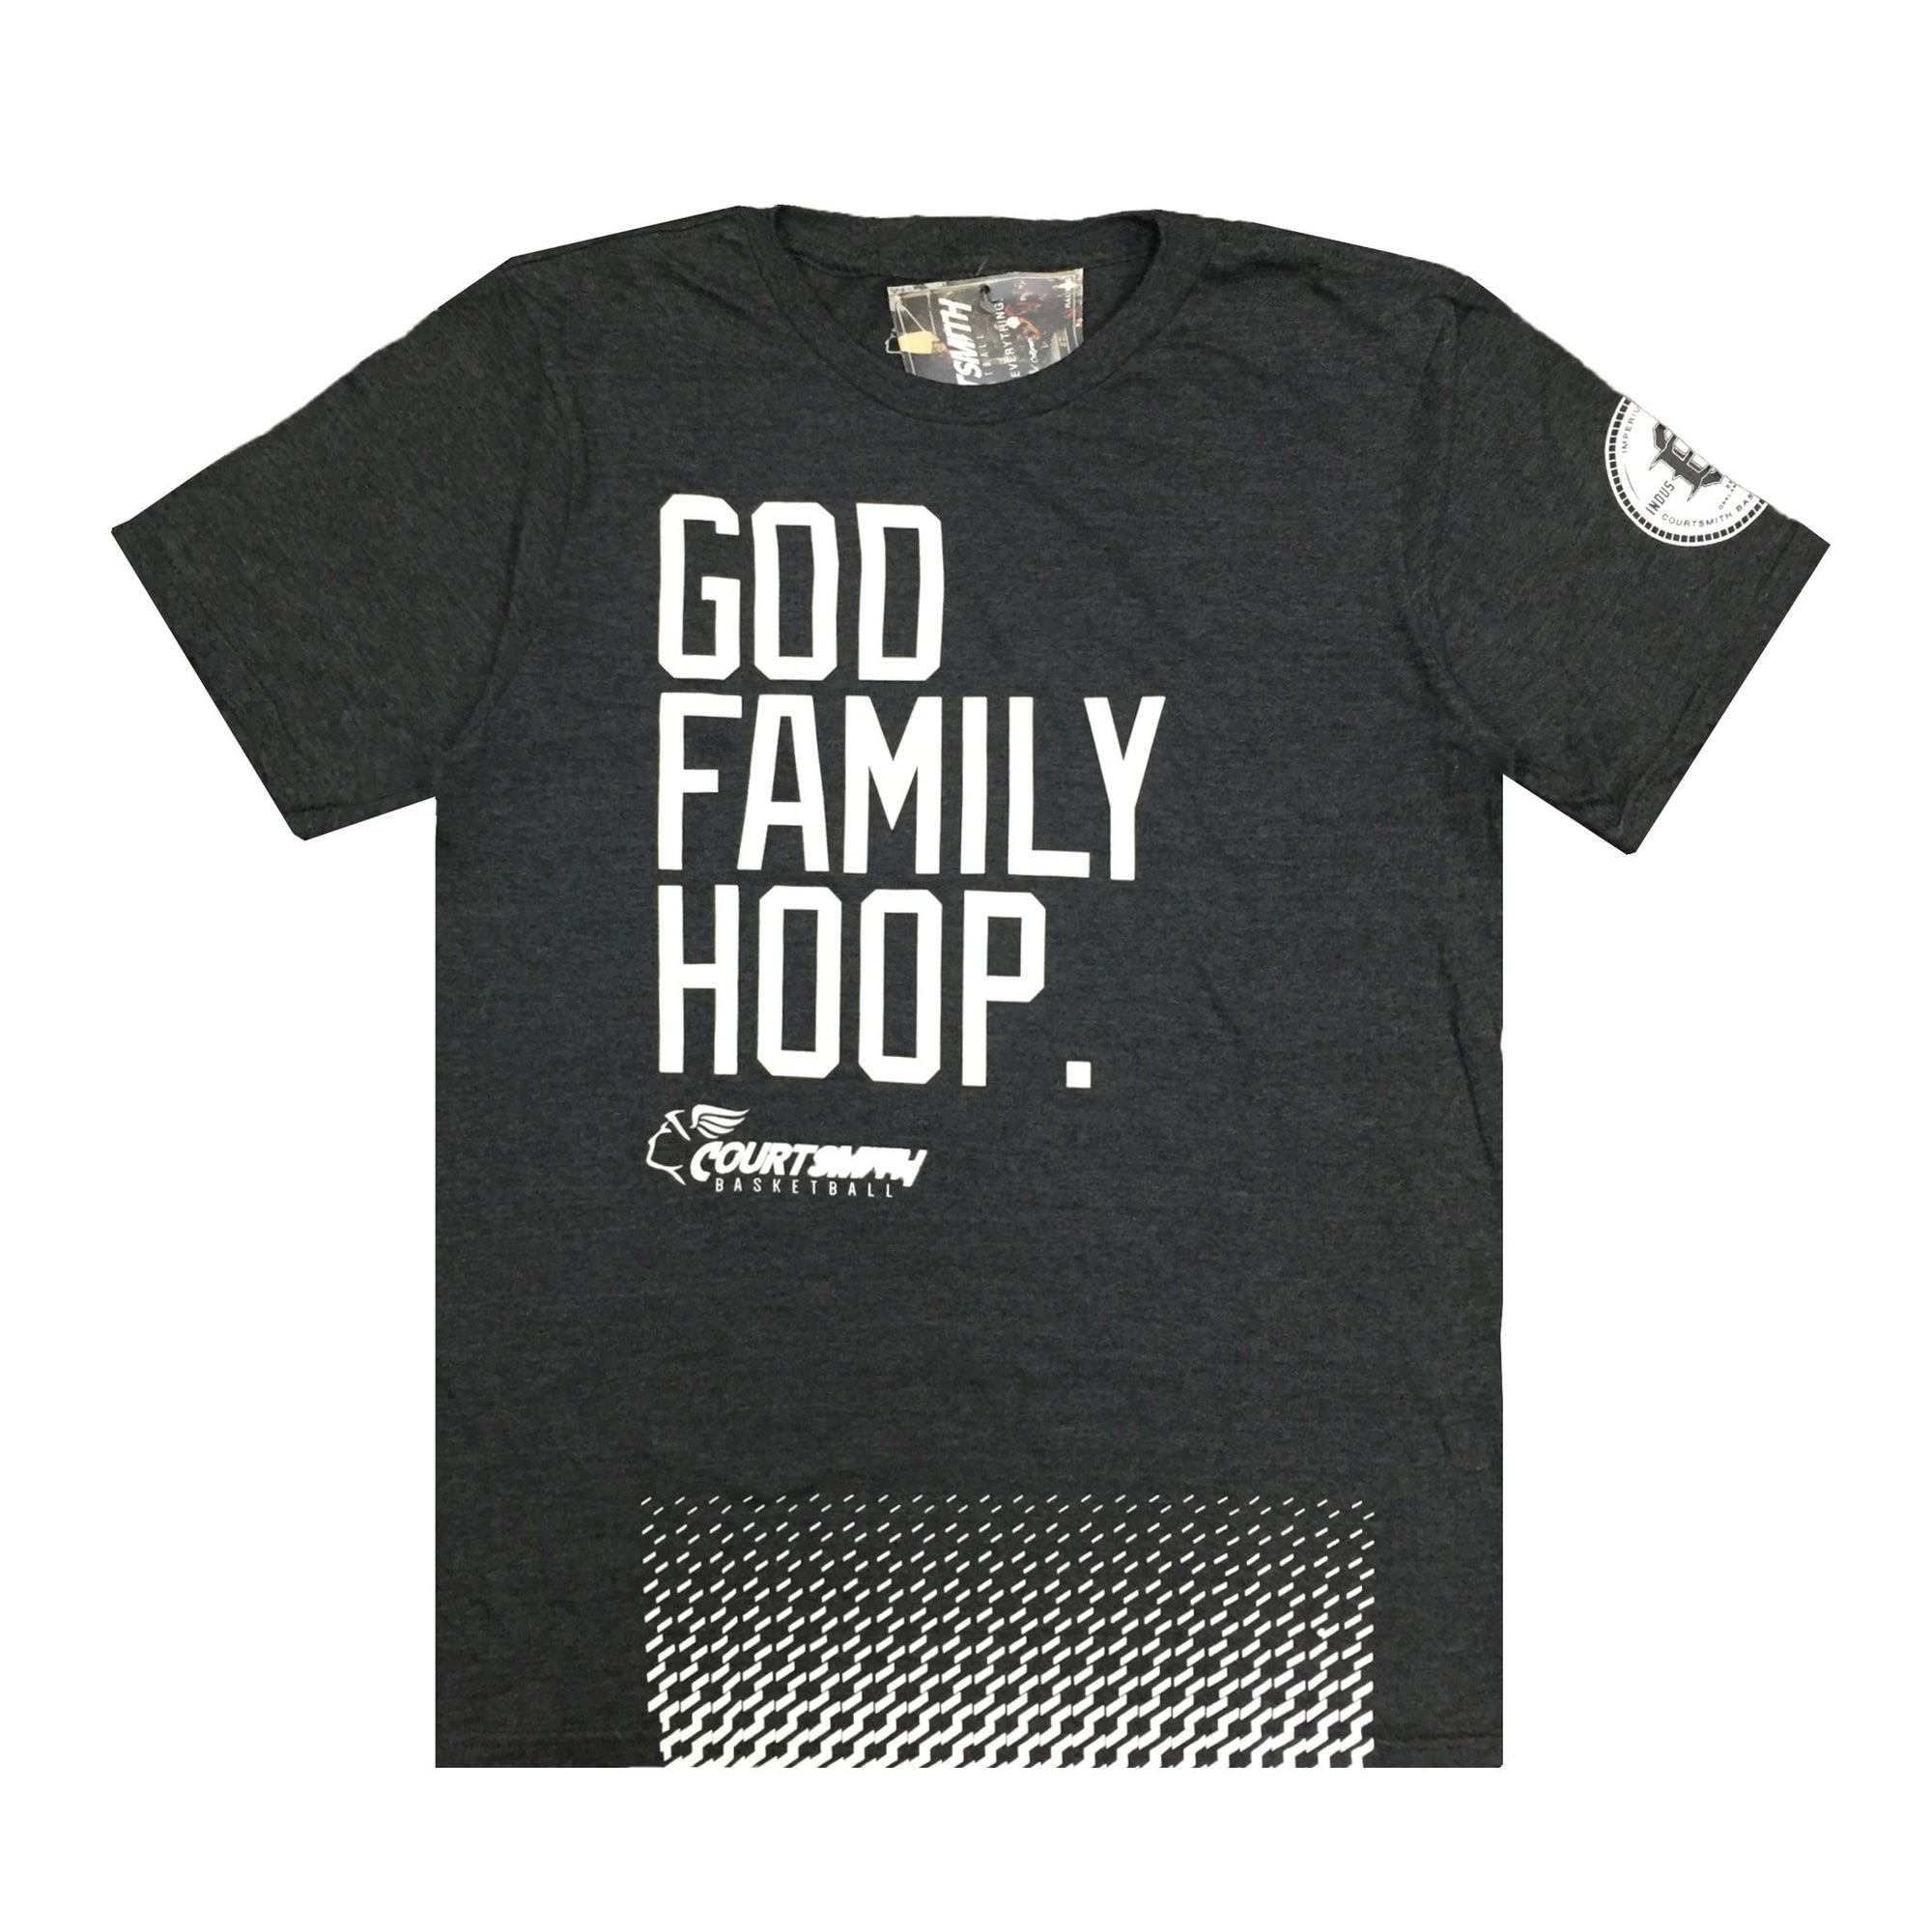 Hoop Family Youth Courtsmith God Basketball Charcoal T-shirts